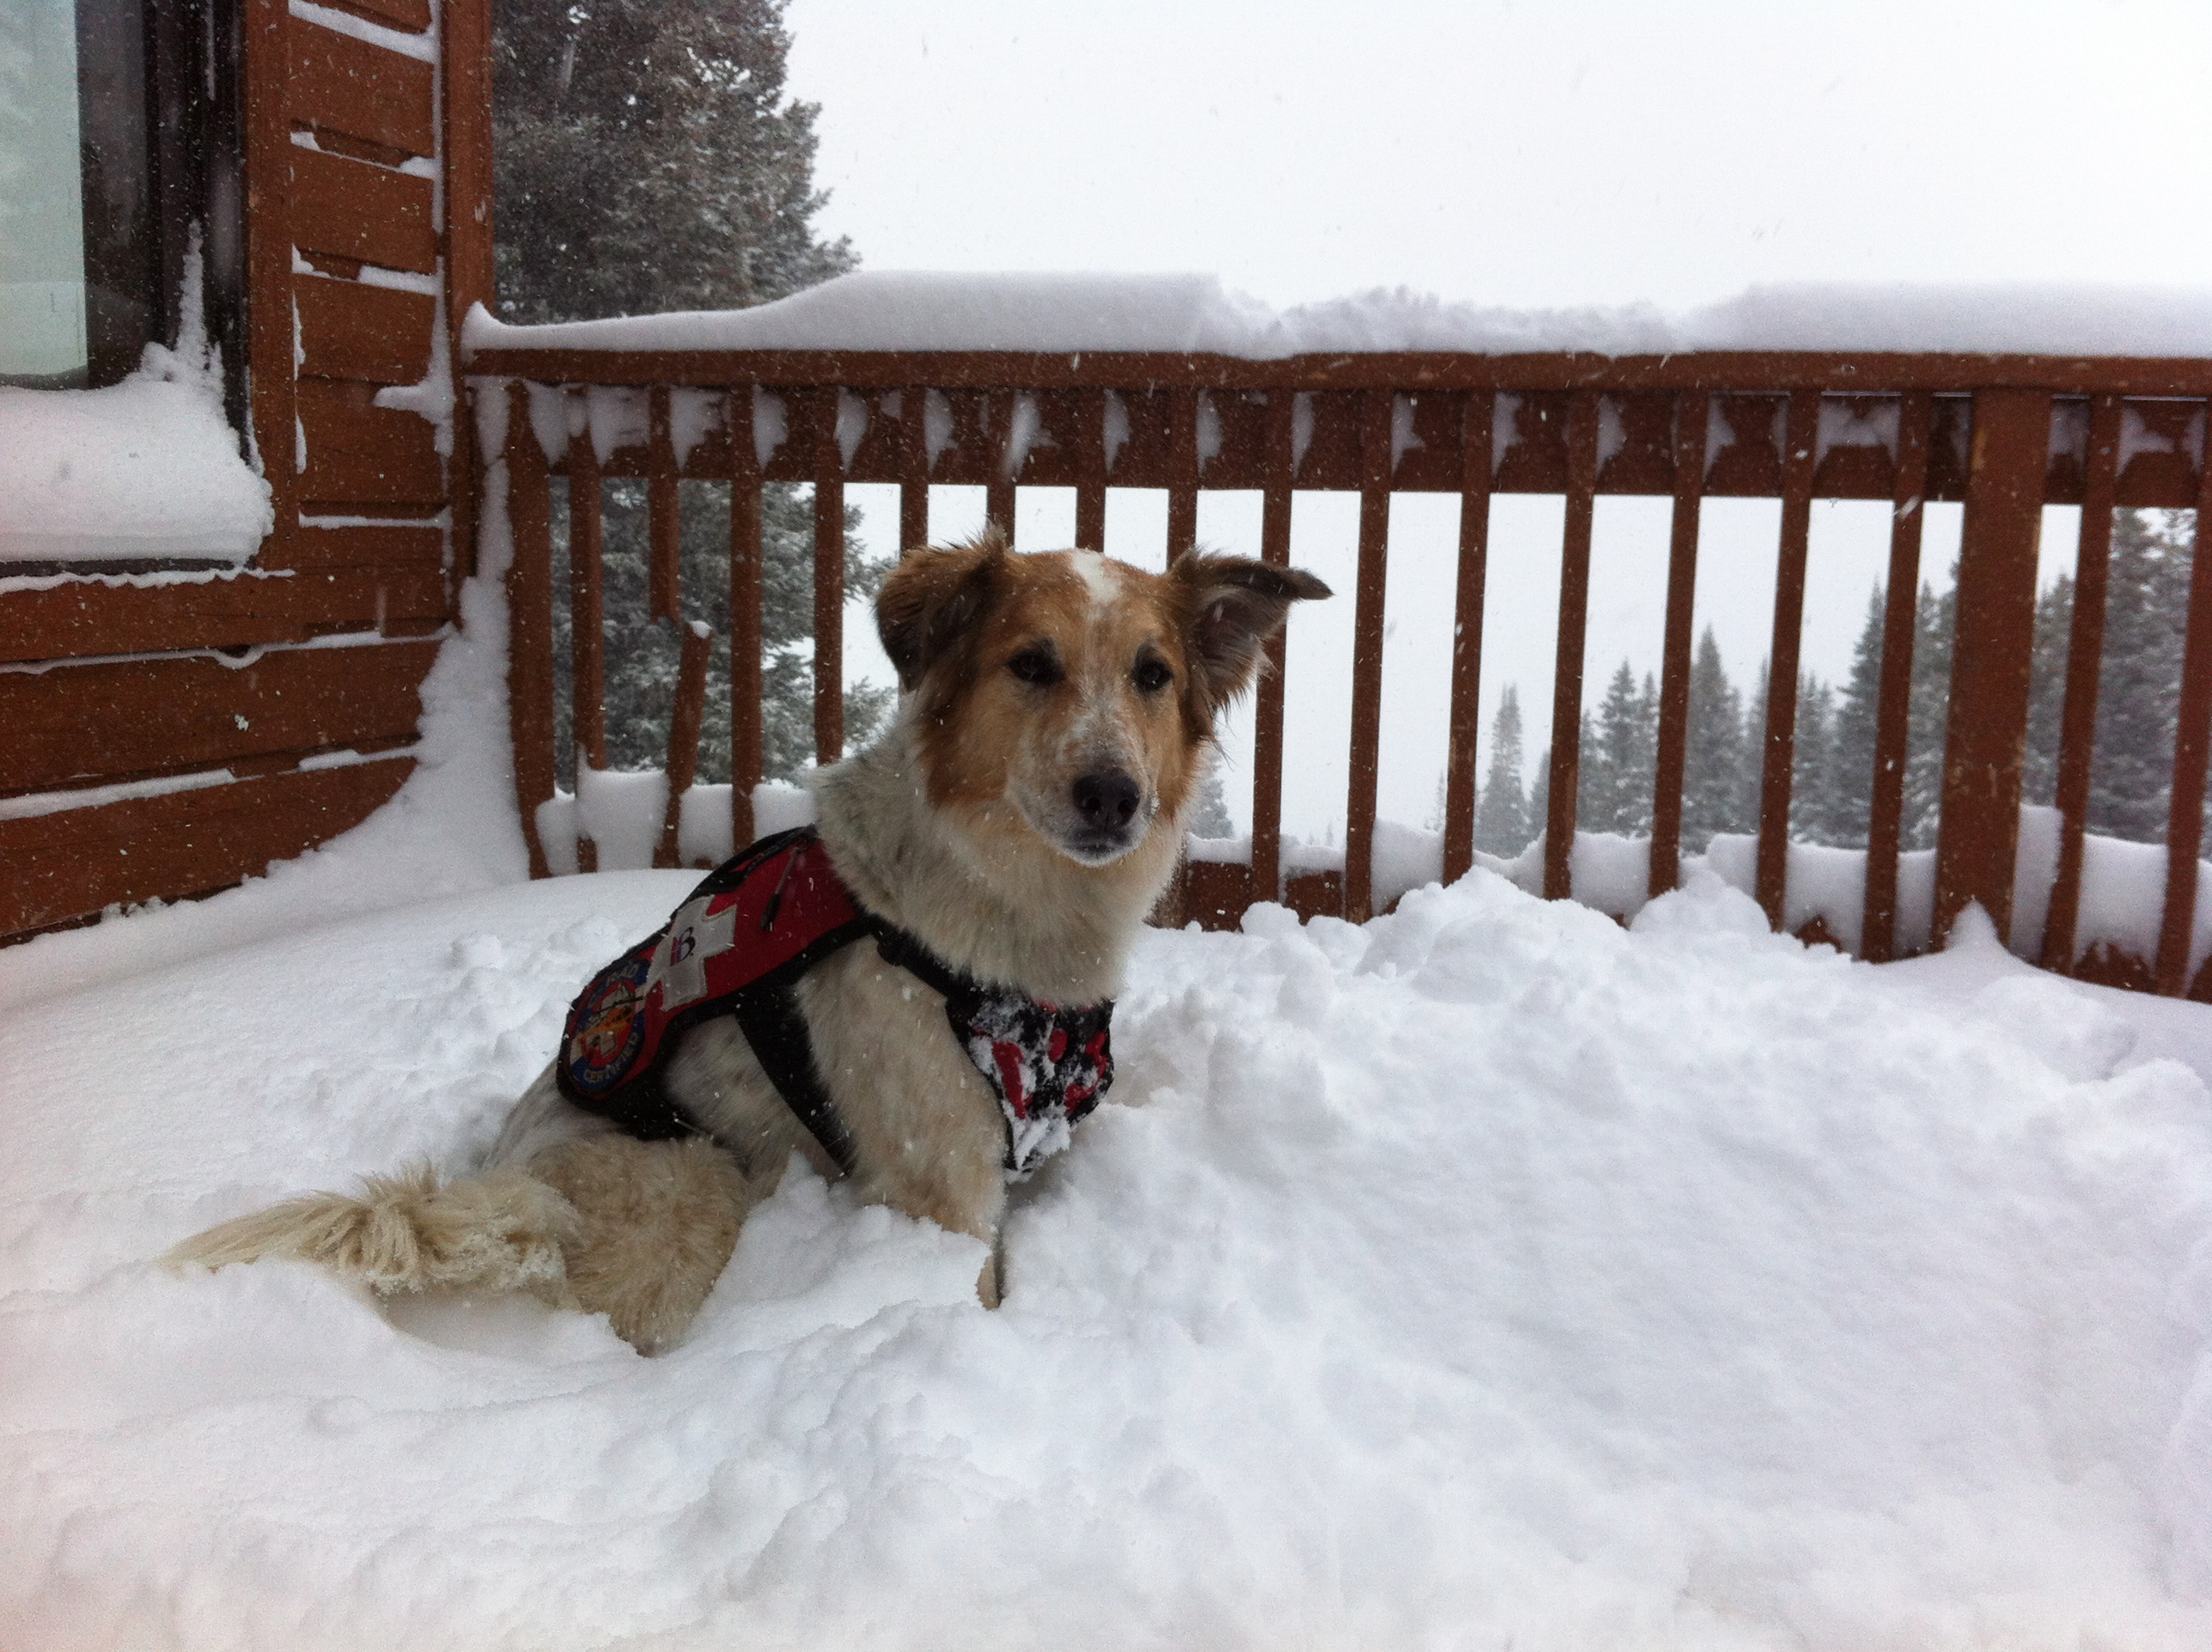 Tali the patrol dog enjoys the fresh snow on Dec. 18.